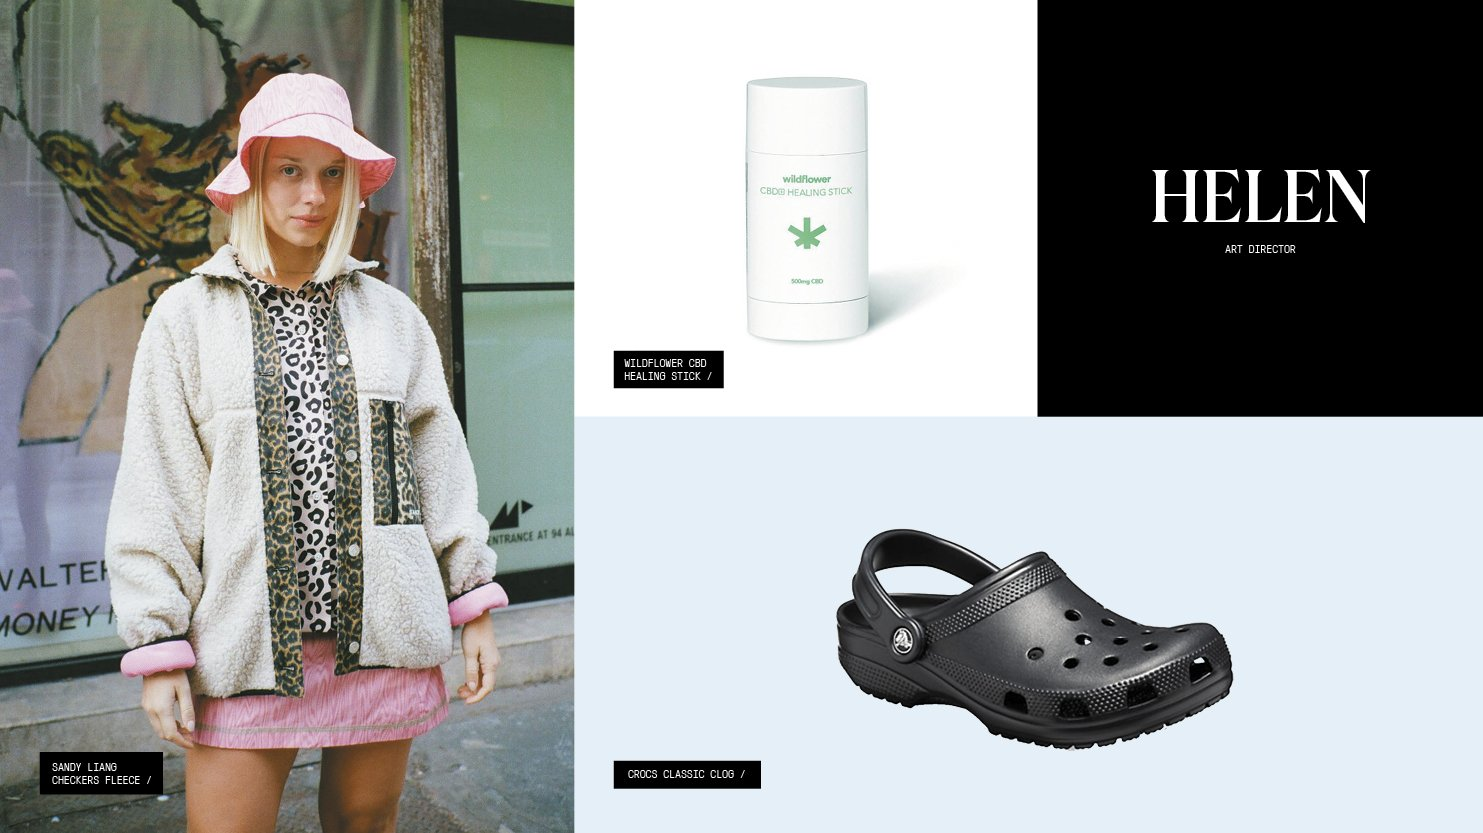 A roundup of gift picks including a fleece with leopard-print trim, a CBD topical, and Crocs sandals.